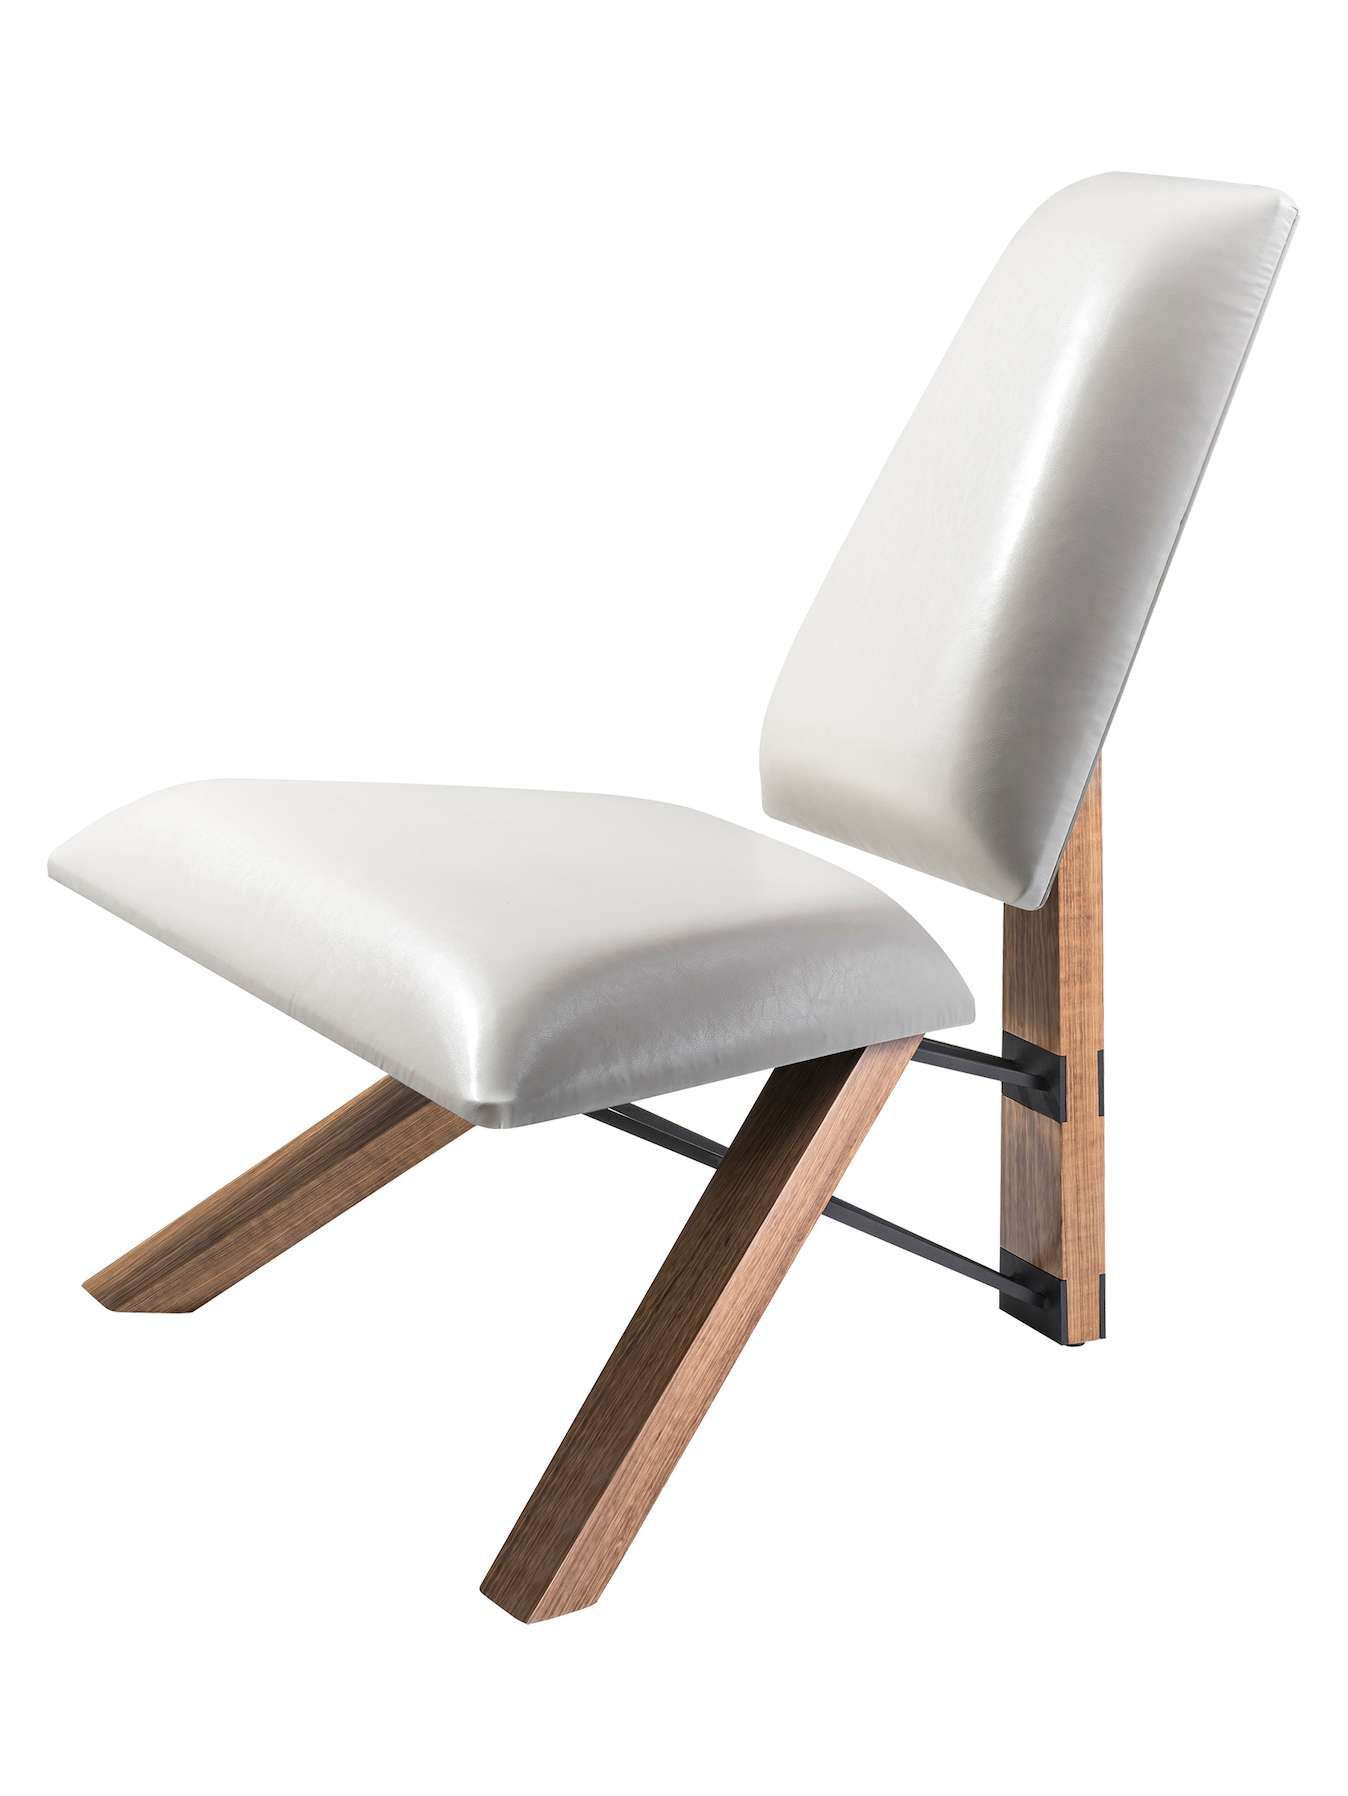 Superbe Hahn Chair Eames, Diy Furniture, Sofas, Chill, Accent Chairs, Chairs,